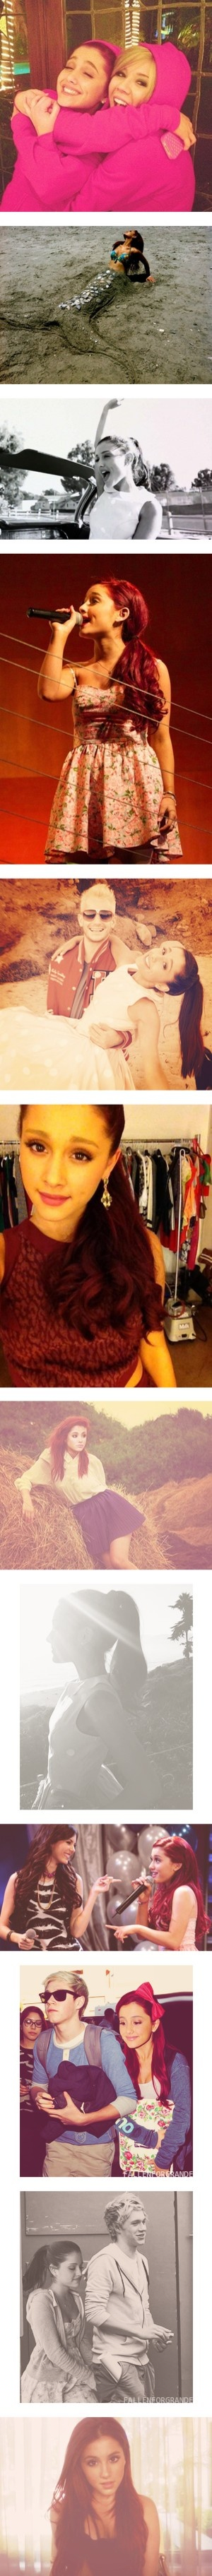 """004//{Ariana Grande}"" by pewds-direction ❤ liked on Polyvore"